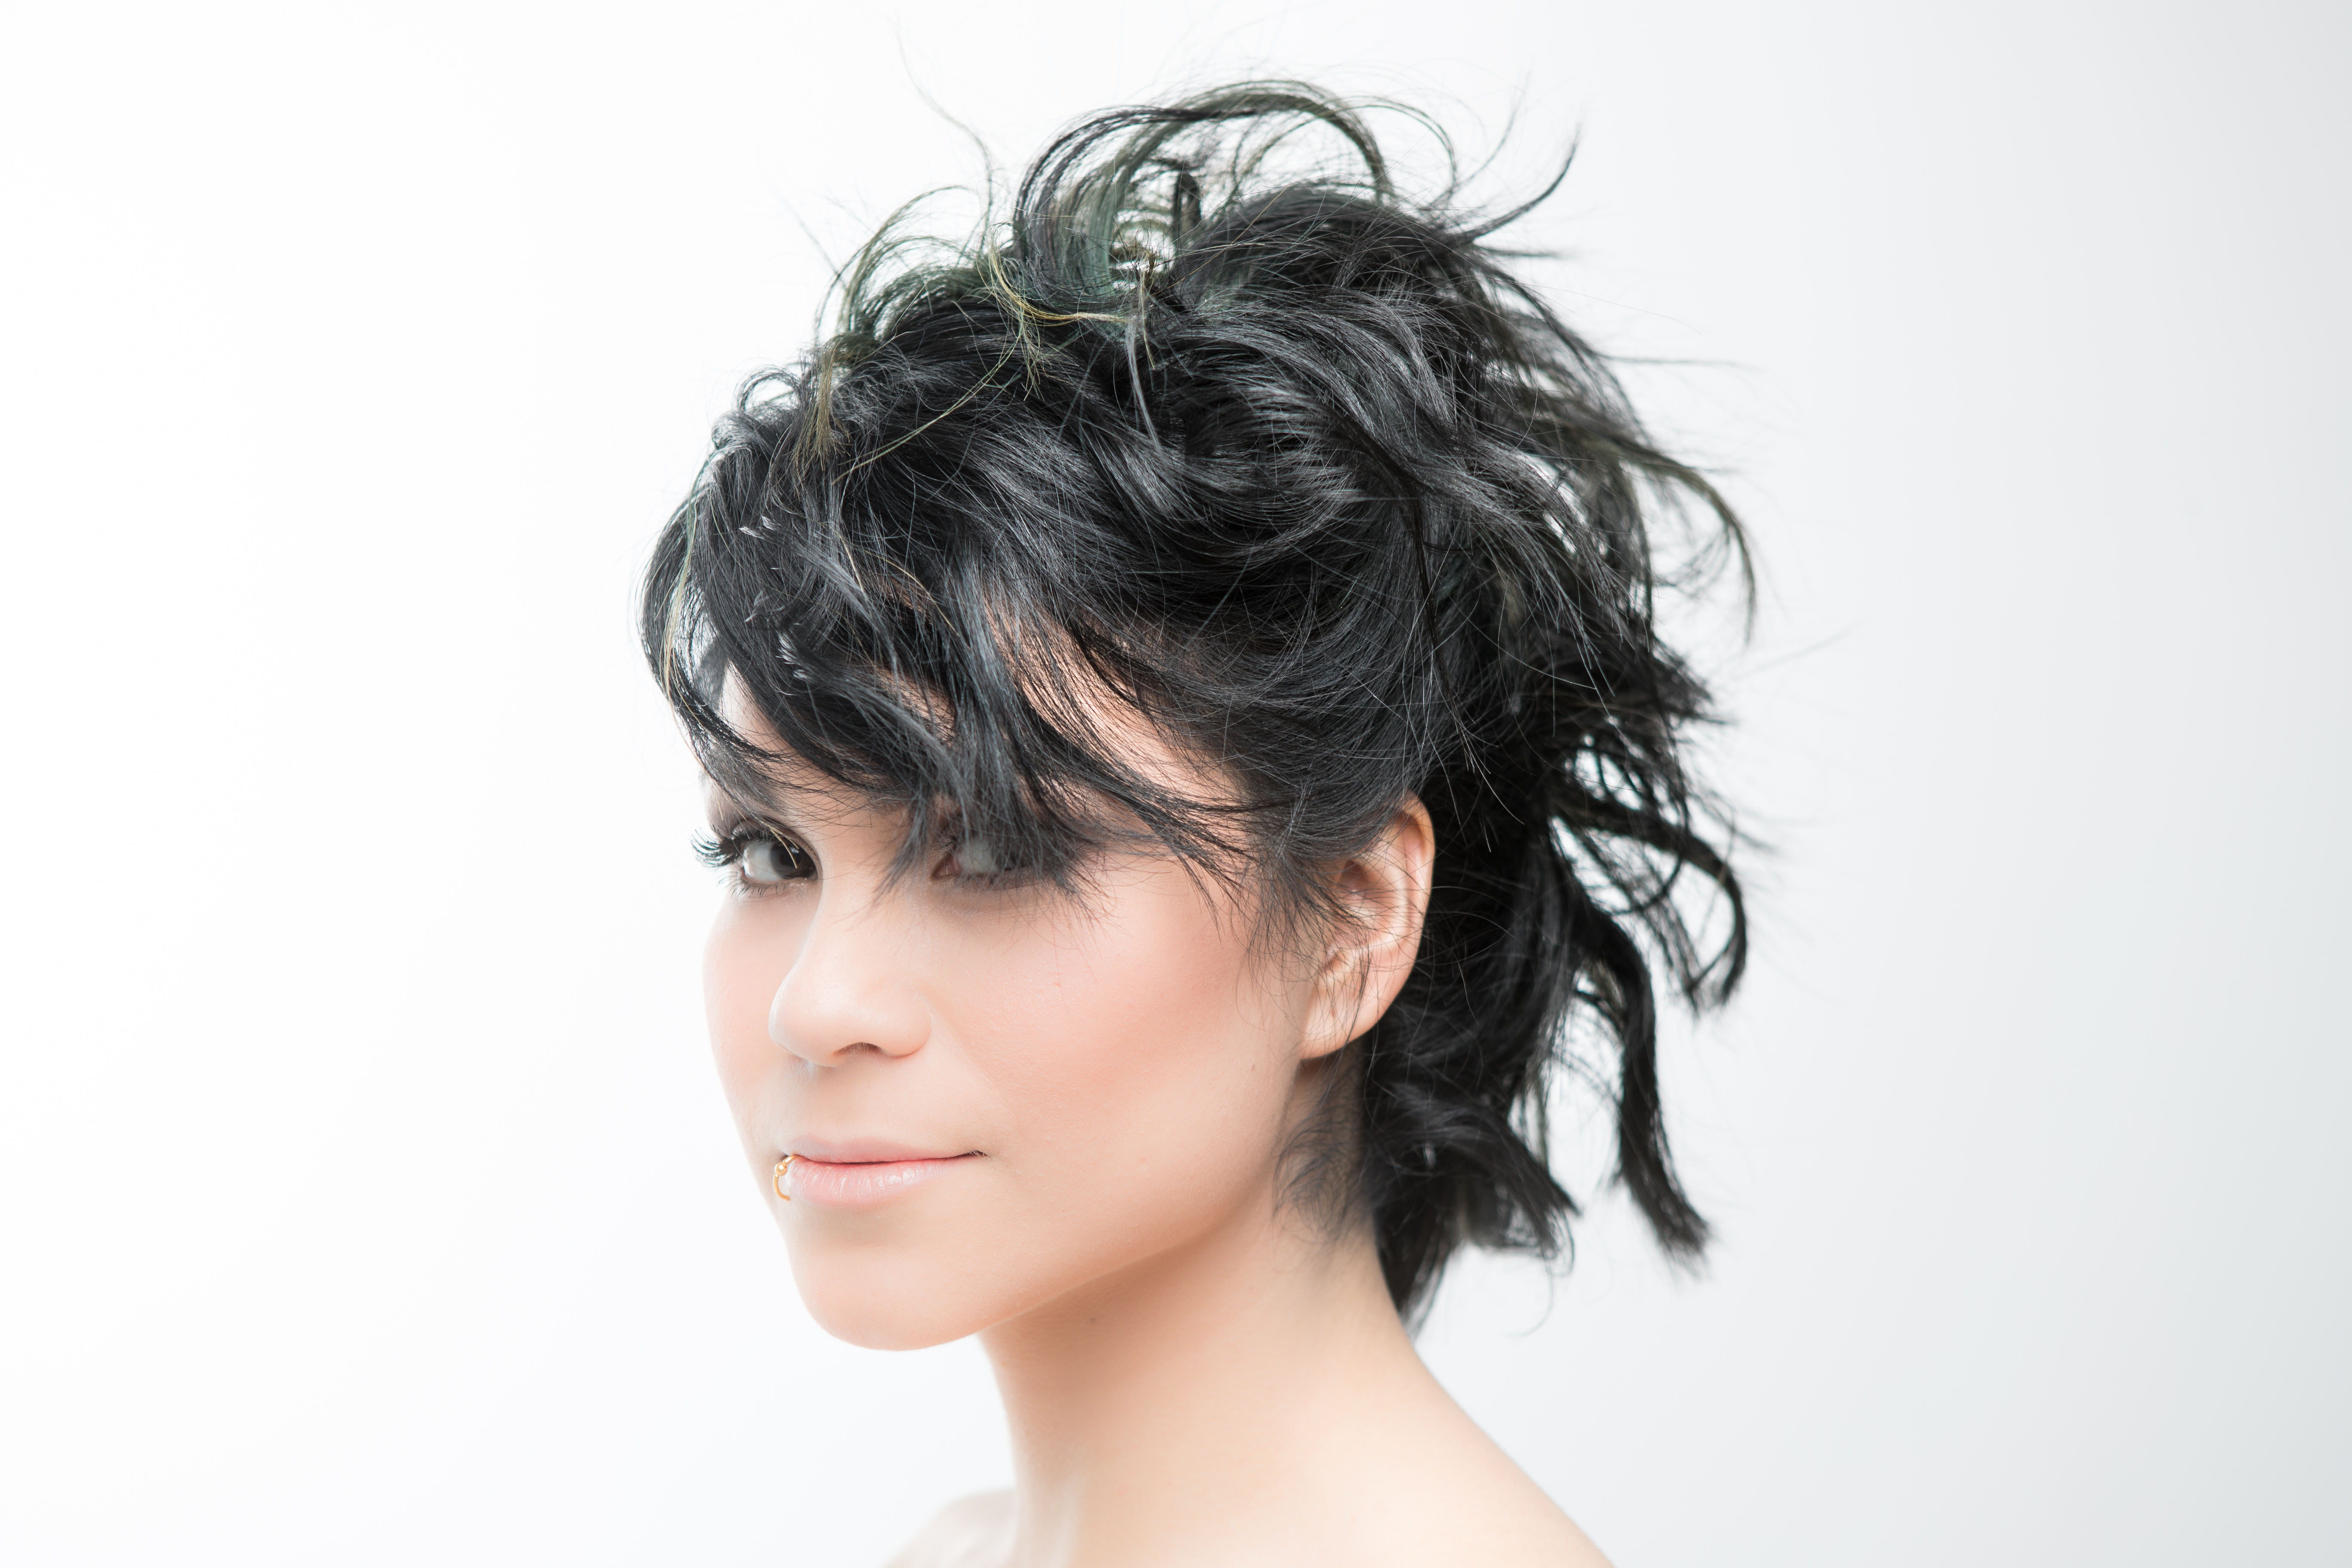 Tousled updo with a bob